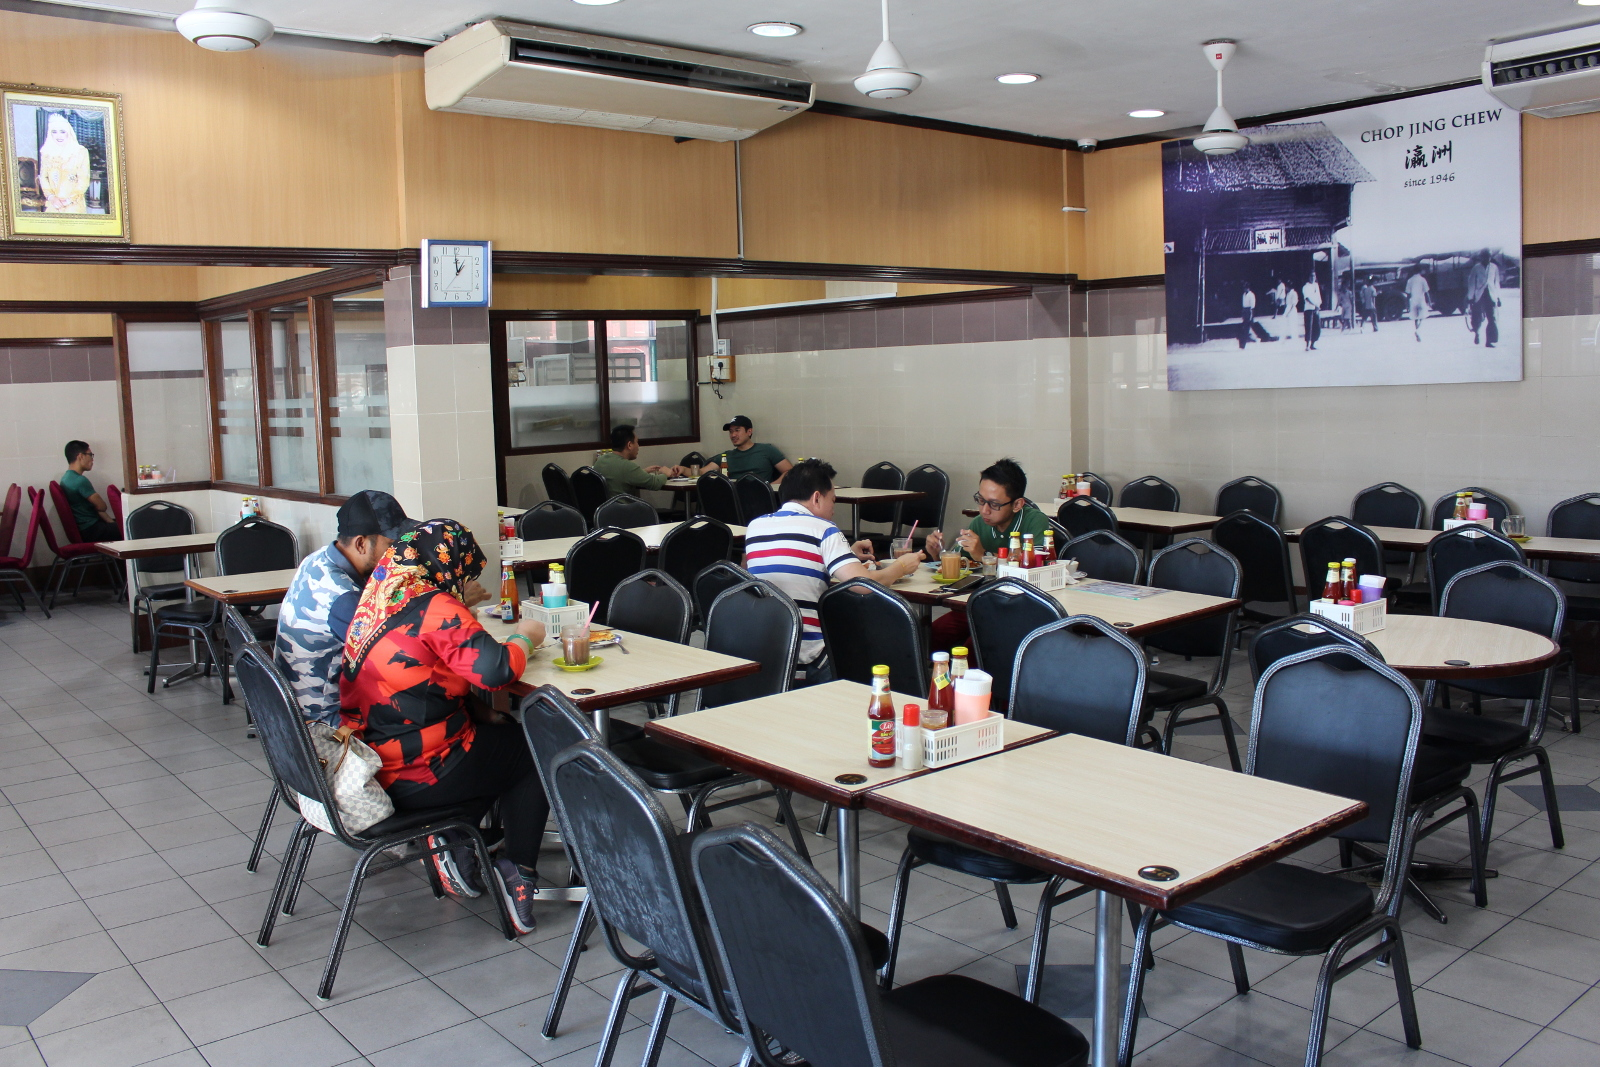 Must Try* Authentic Traditional Hainanese Bread Cafe – Chop